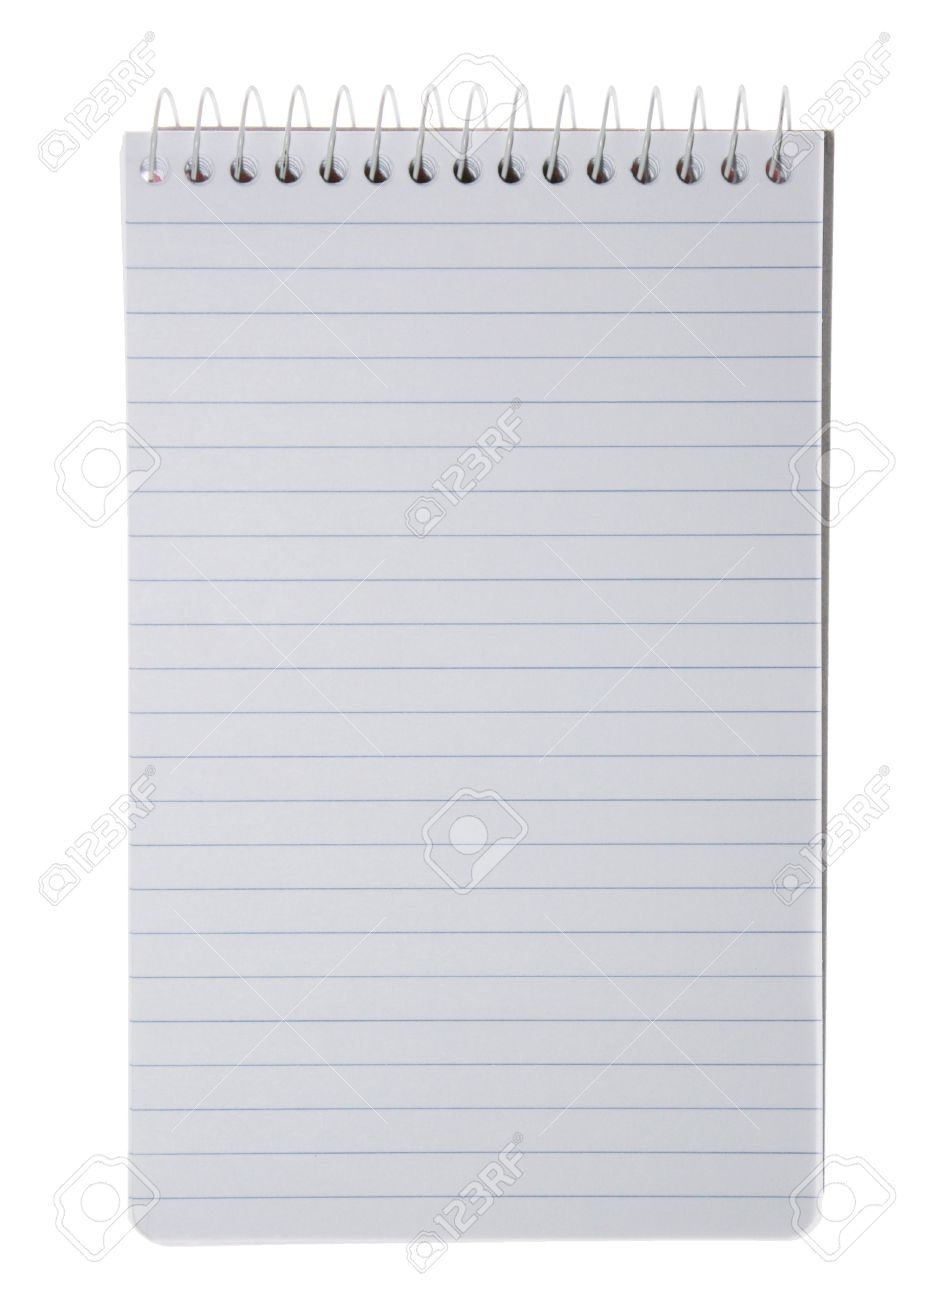 Blank Sheet Of Paper With Horizontal Lines On A Spiral Notepad – Blank Sheet of Paper with Lines